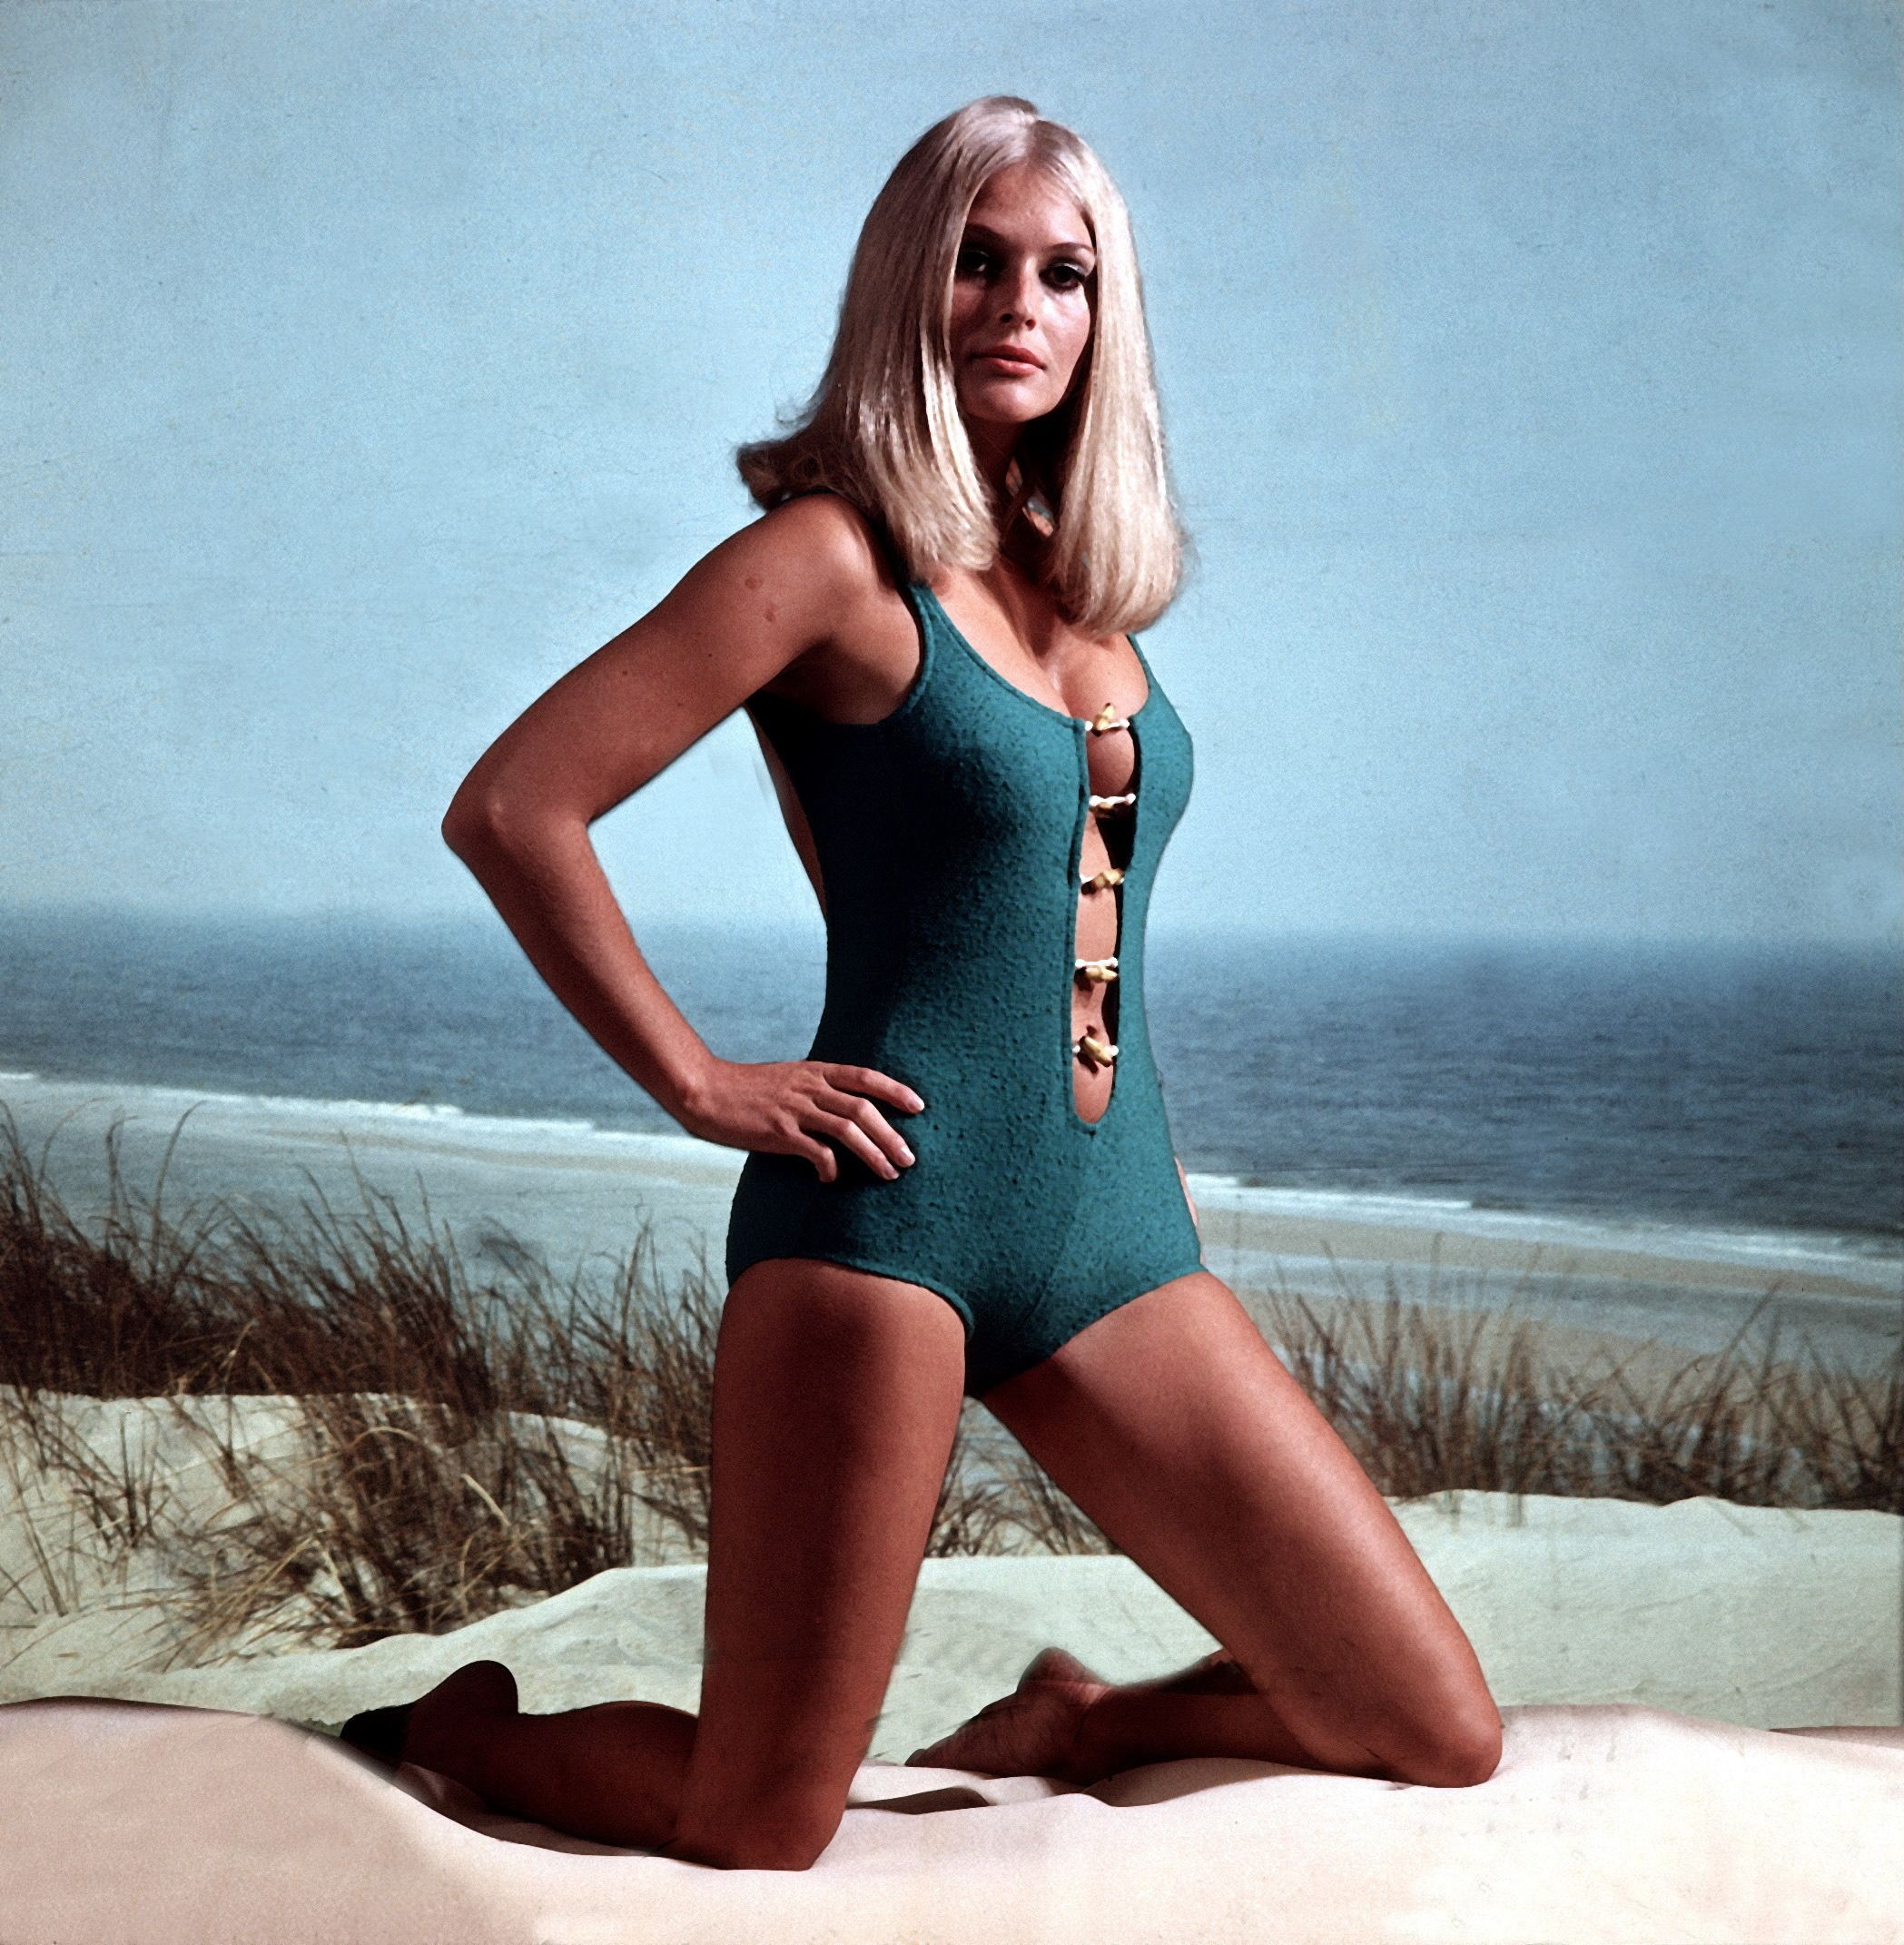 f85aaf2af7 How Swimsuit and Bikini Style Has Changed Through the Years - Most Popular Bathing  Suit the Year You Were Born